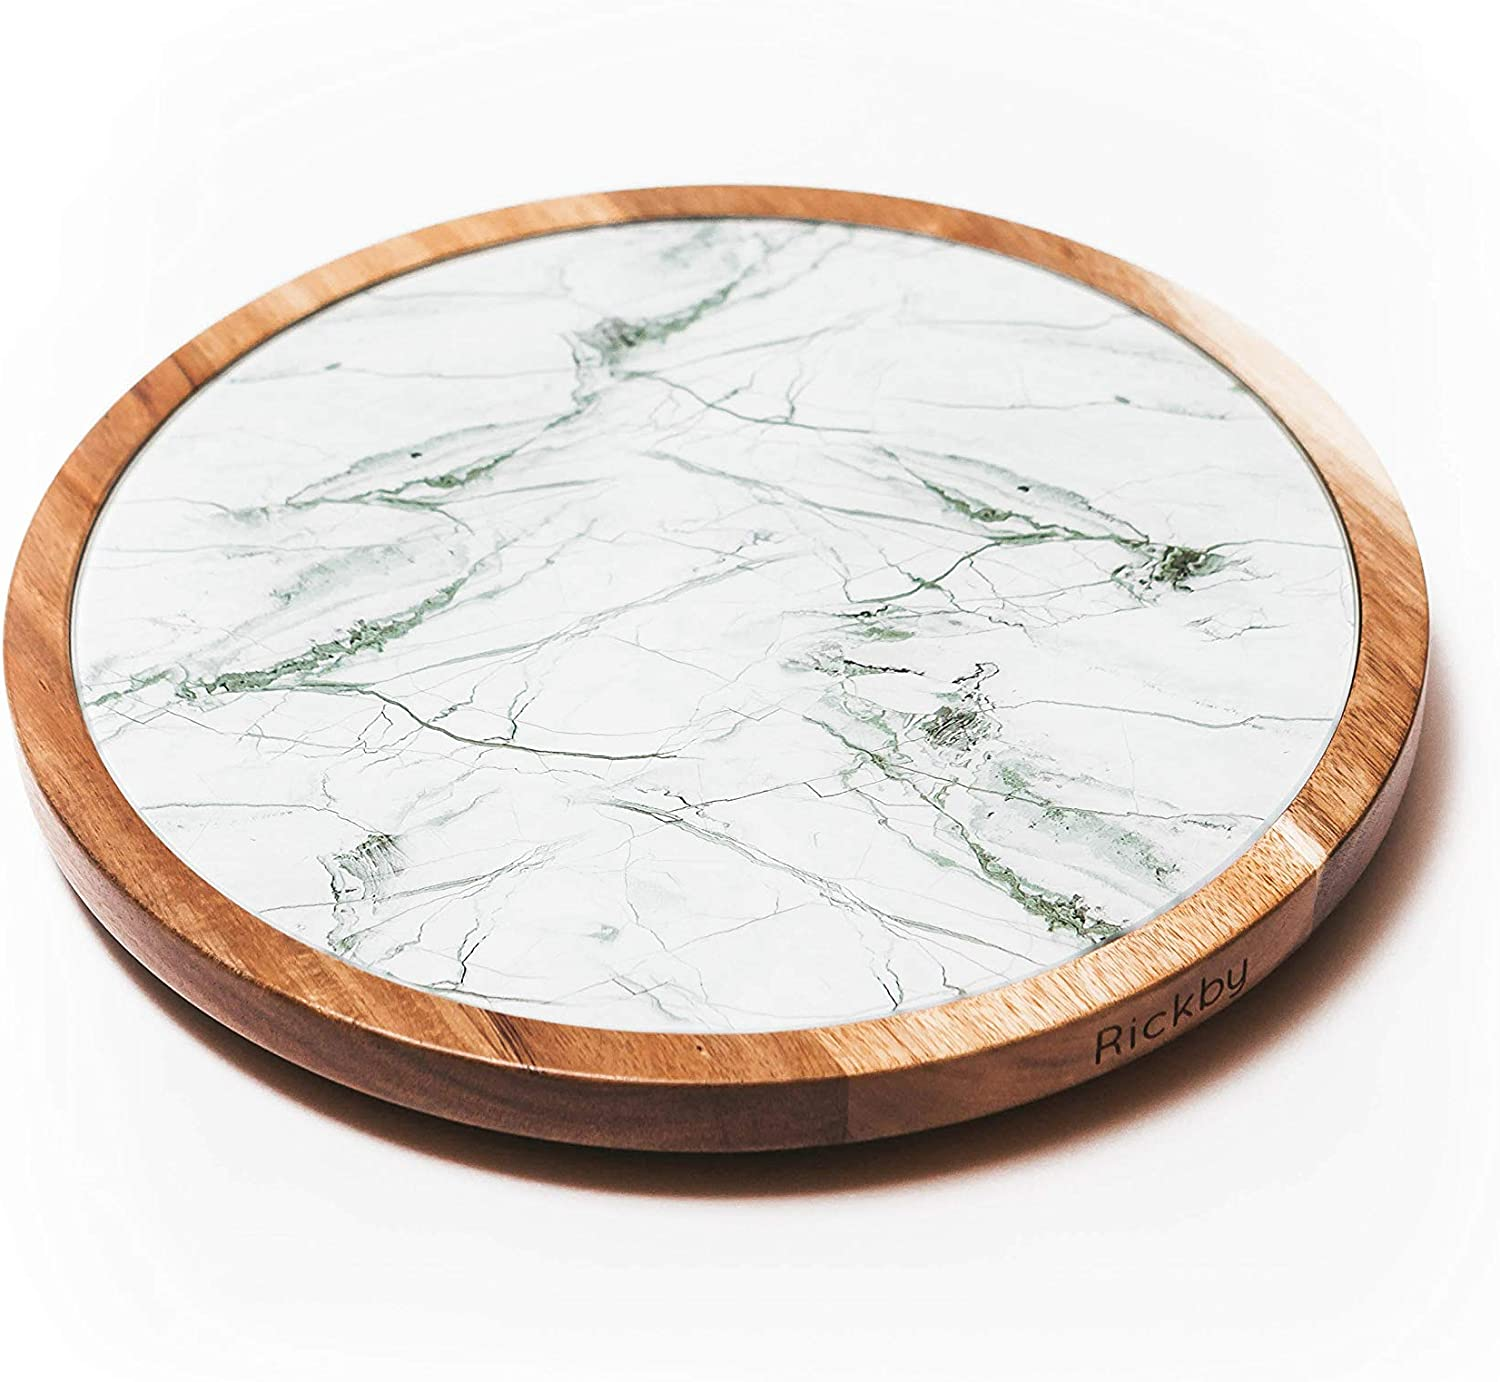 Lazy Susan Turntable - 2in1 Acacia Wood and Removable Glass Plate with WHITE & GRAY Marble Texture 12 inch